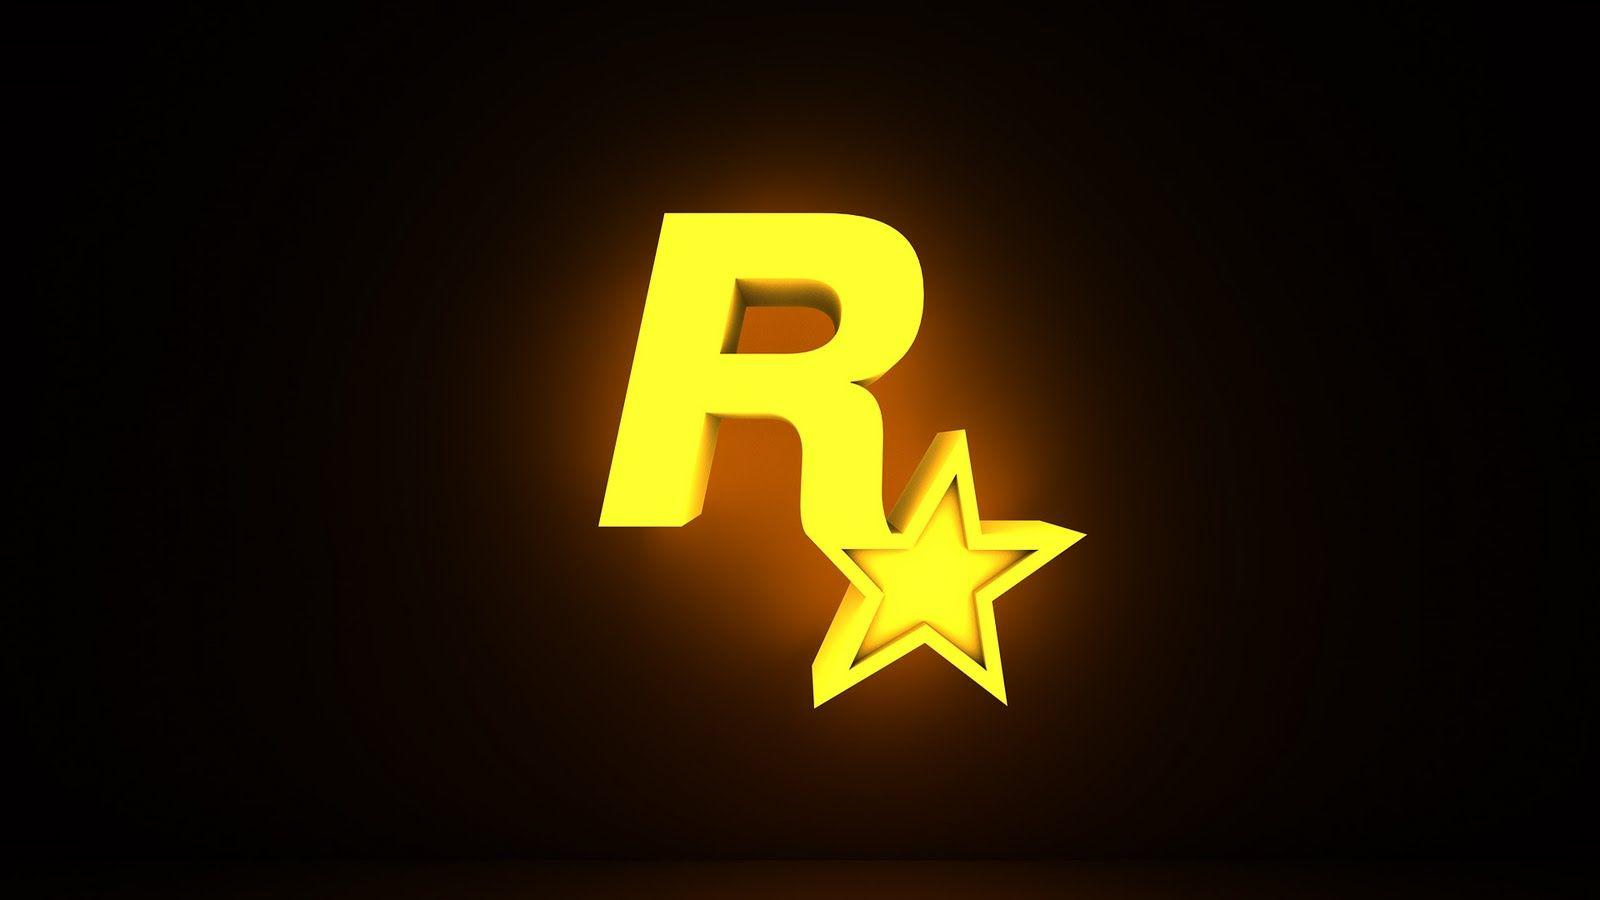 Rockstar Wallpapers 1600x900